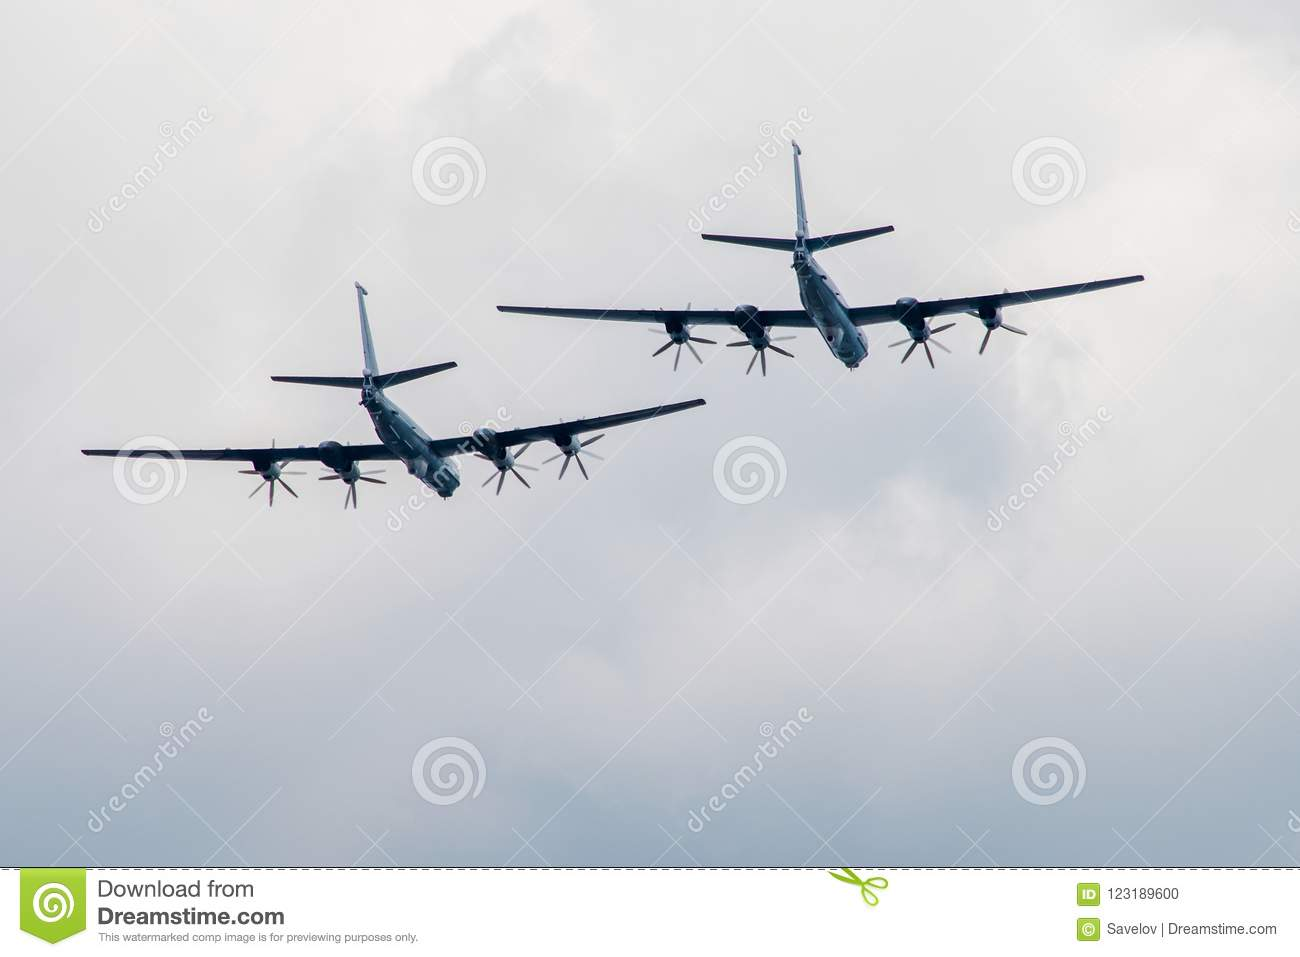 Large planes fly away